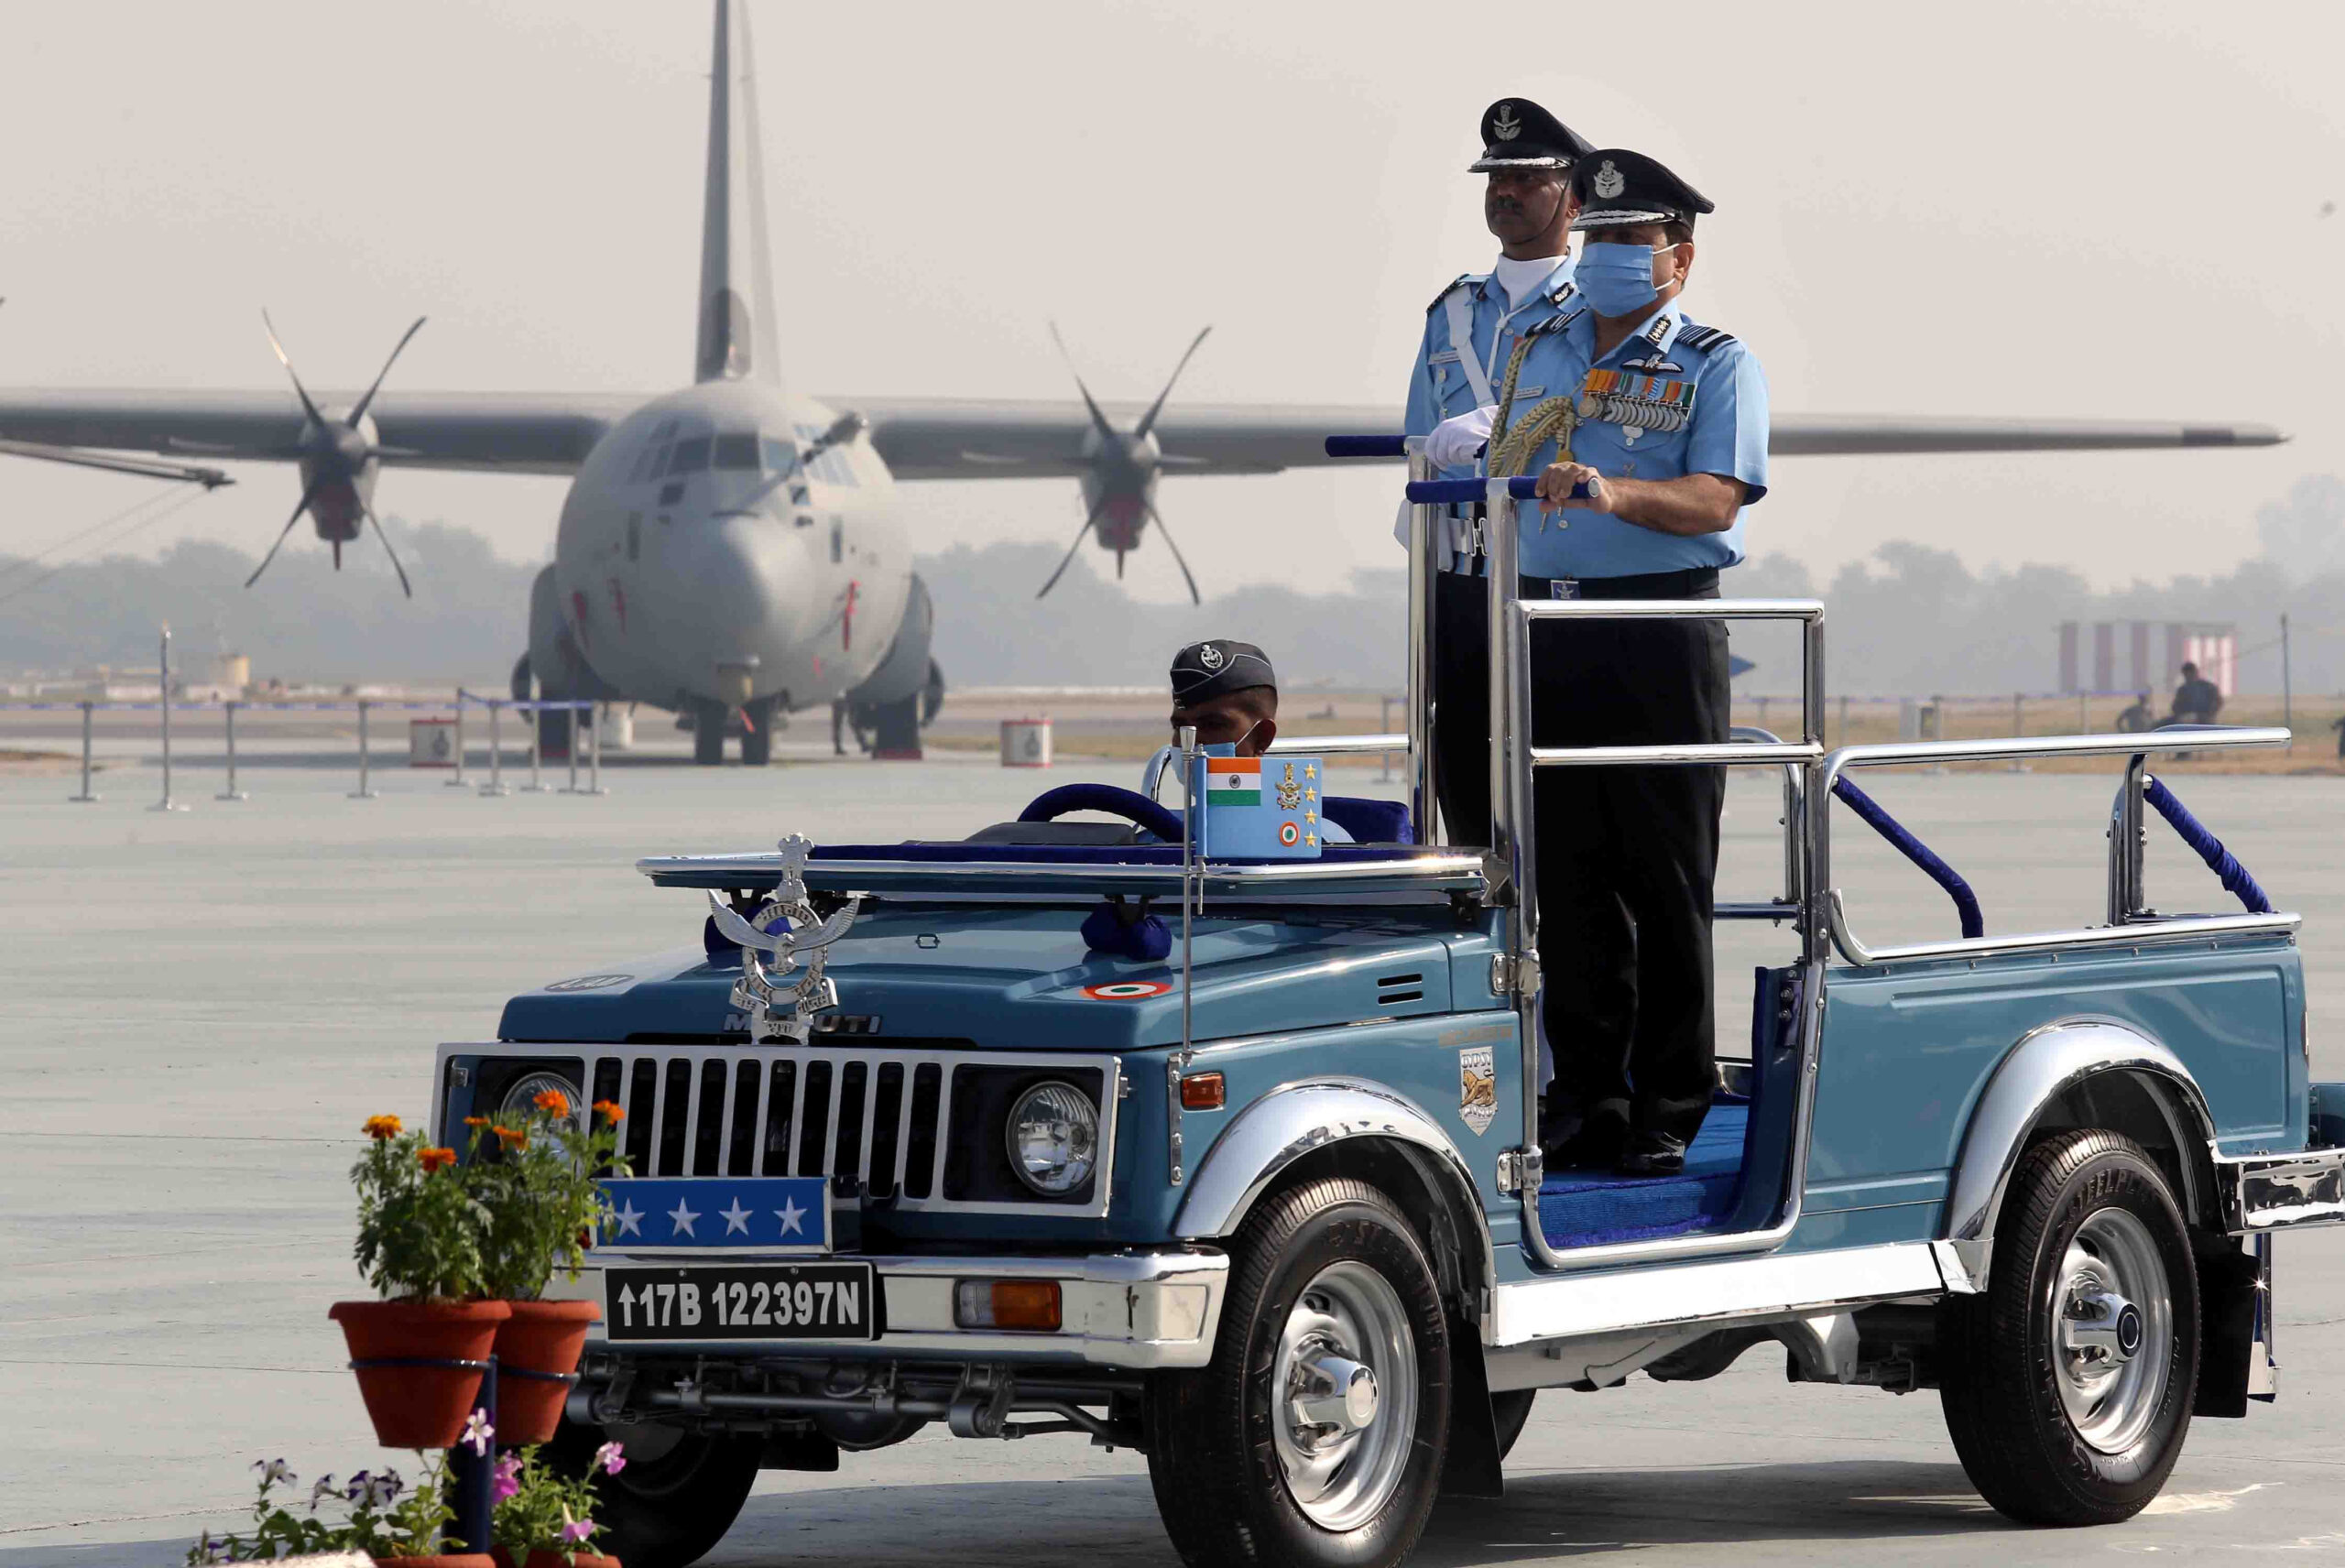 Deployment of Frontline Combat Assets in Ladakh Created Credible Deterrence, Says Air Chief